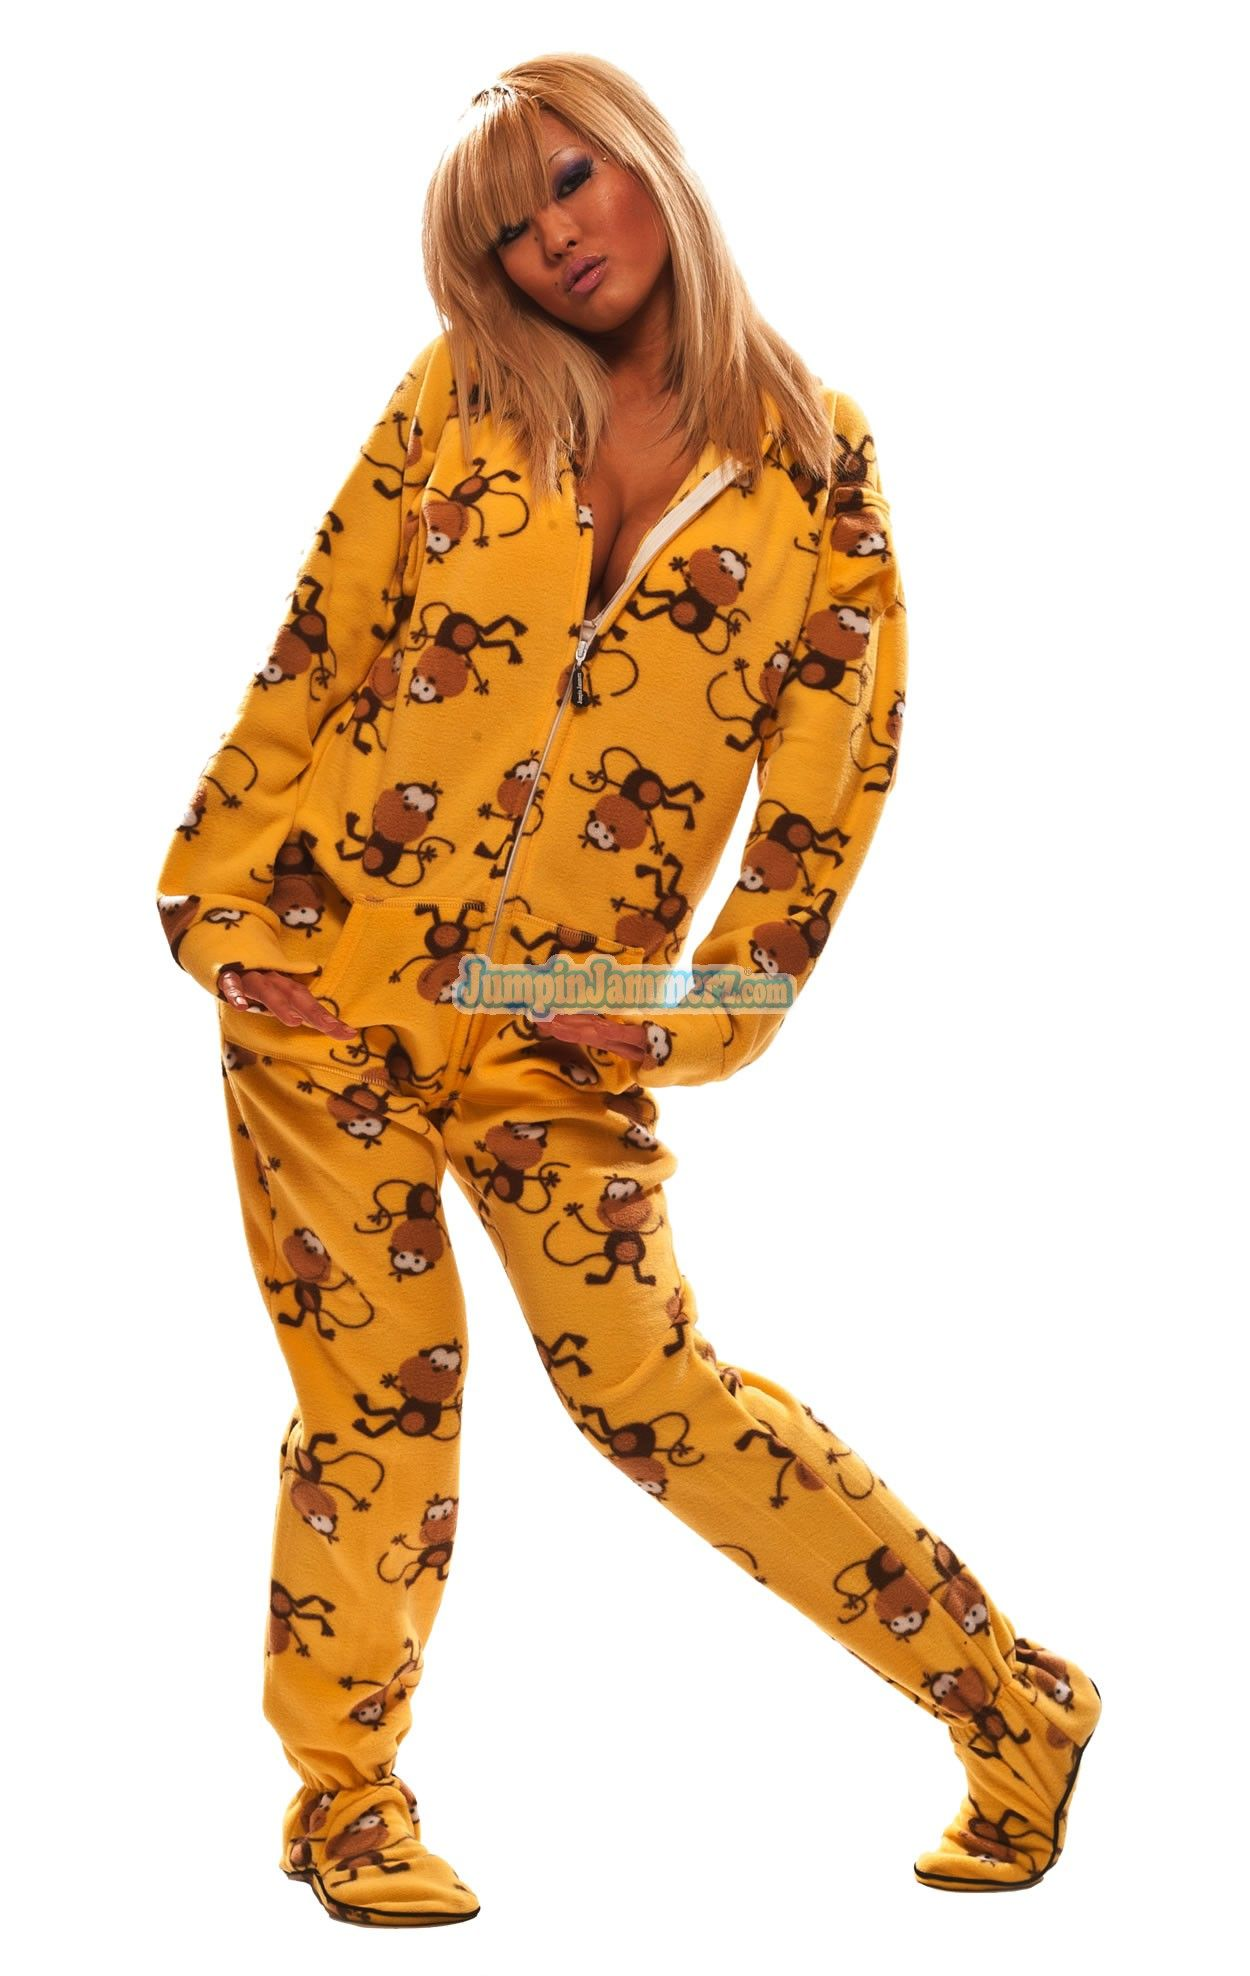 Love these and totally need to get some!!! Adult onesie